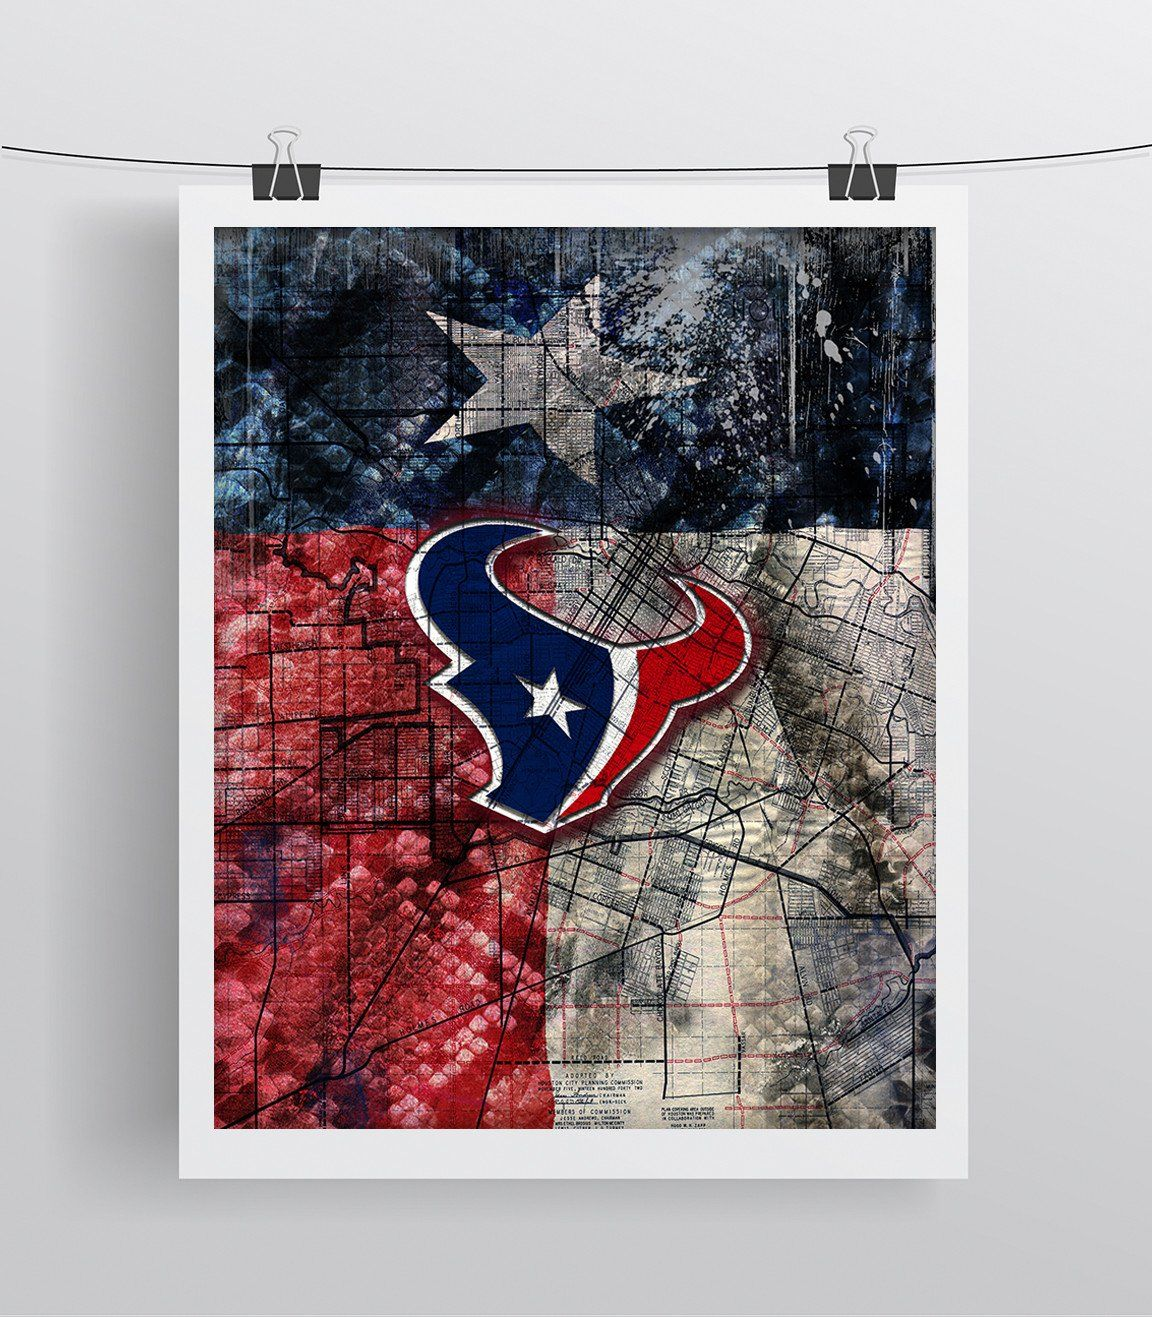 Houston texans sports poster houston texans artwork texans in front of houston map and